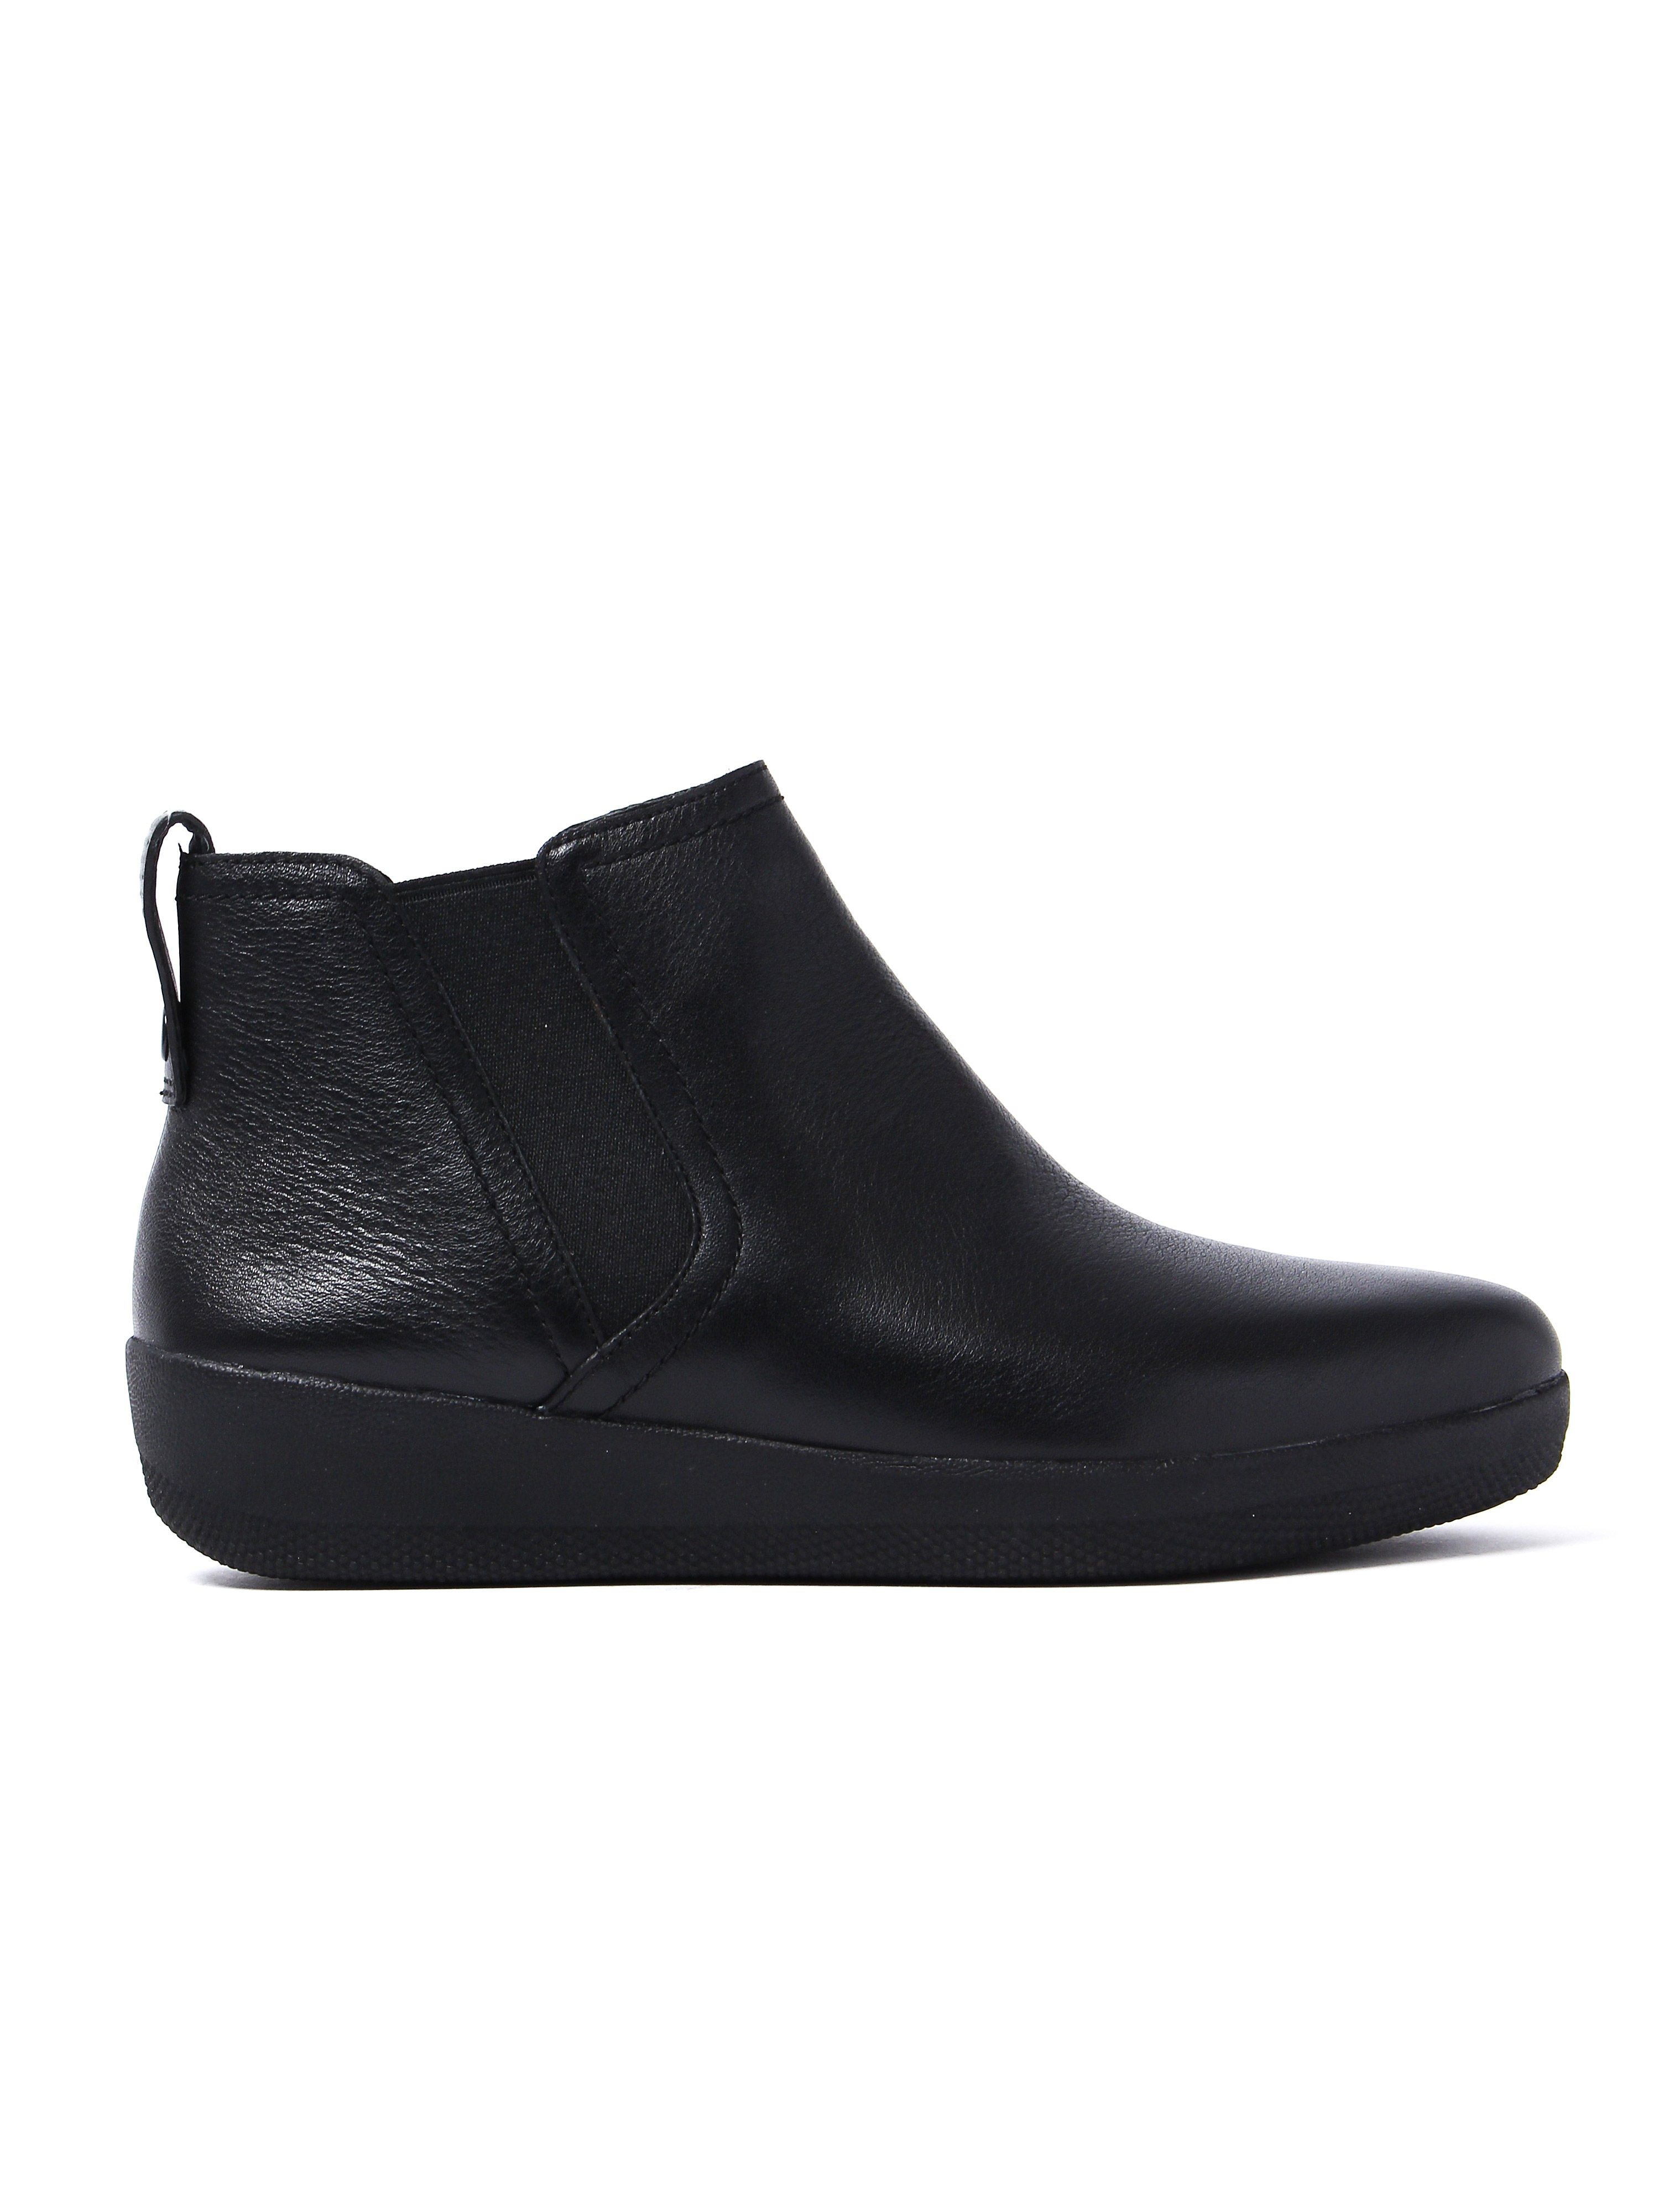 FitFlop Women's Superchelsea Boots - Black Leather